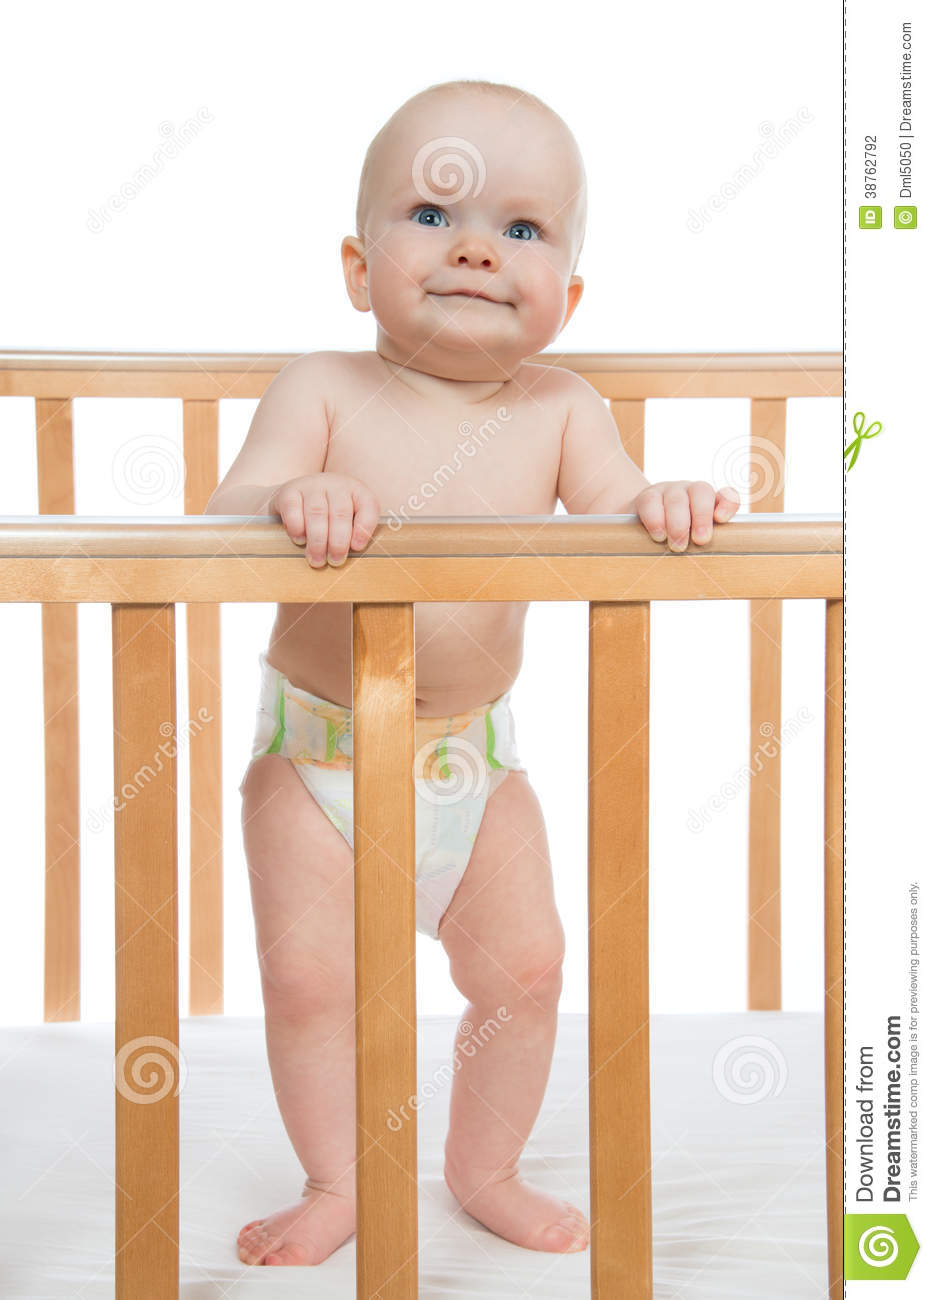 Infant Child Baby Boy Toddler In Wooden Bed Stock